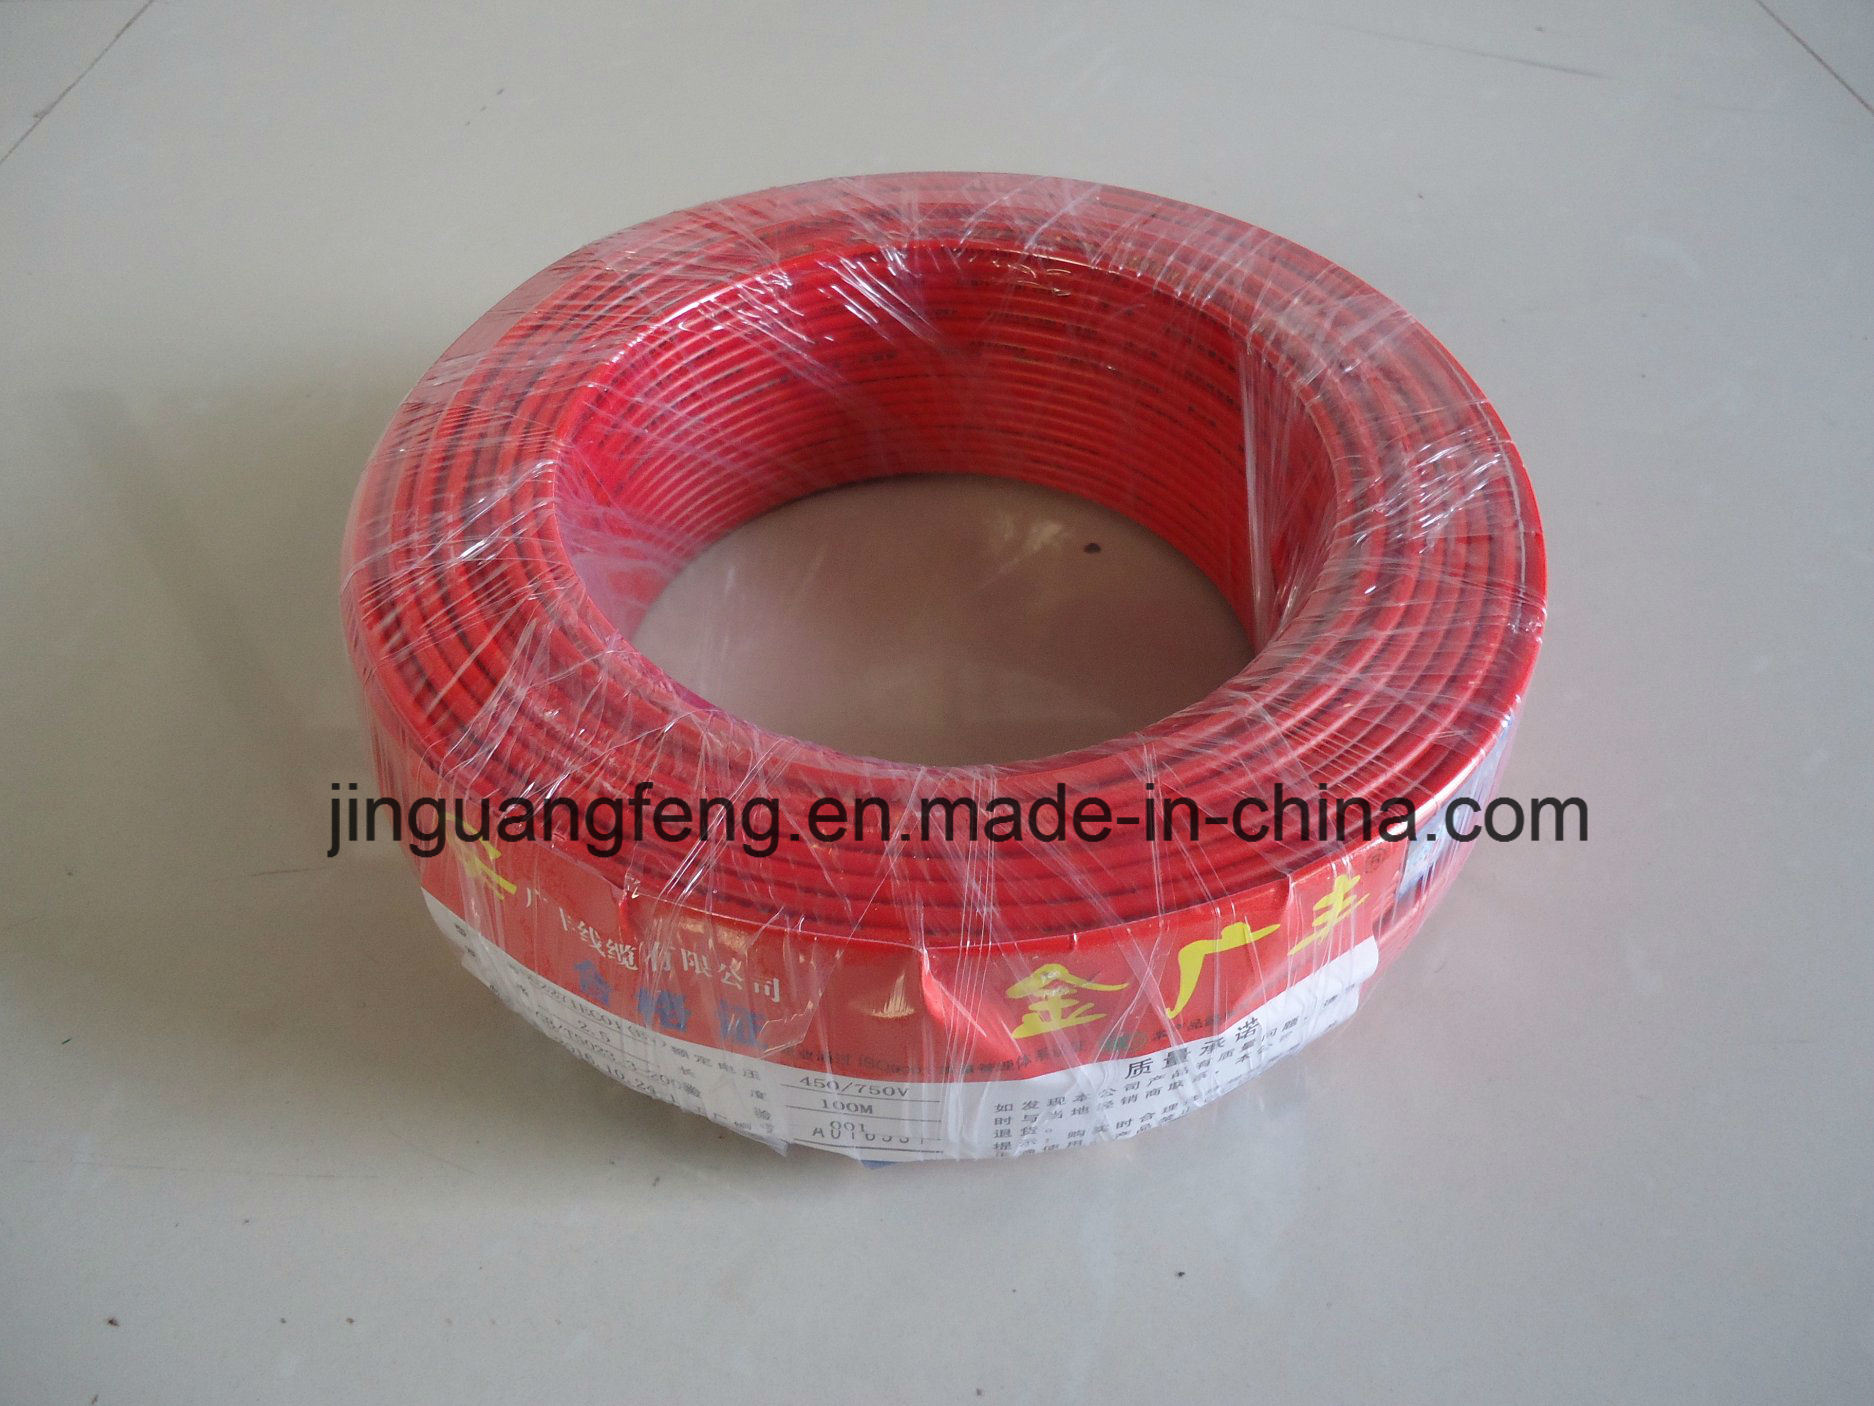 IEC245-81/82 Copper Conductor PVC Insulation Connecting Flexible Electric Wire